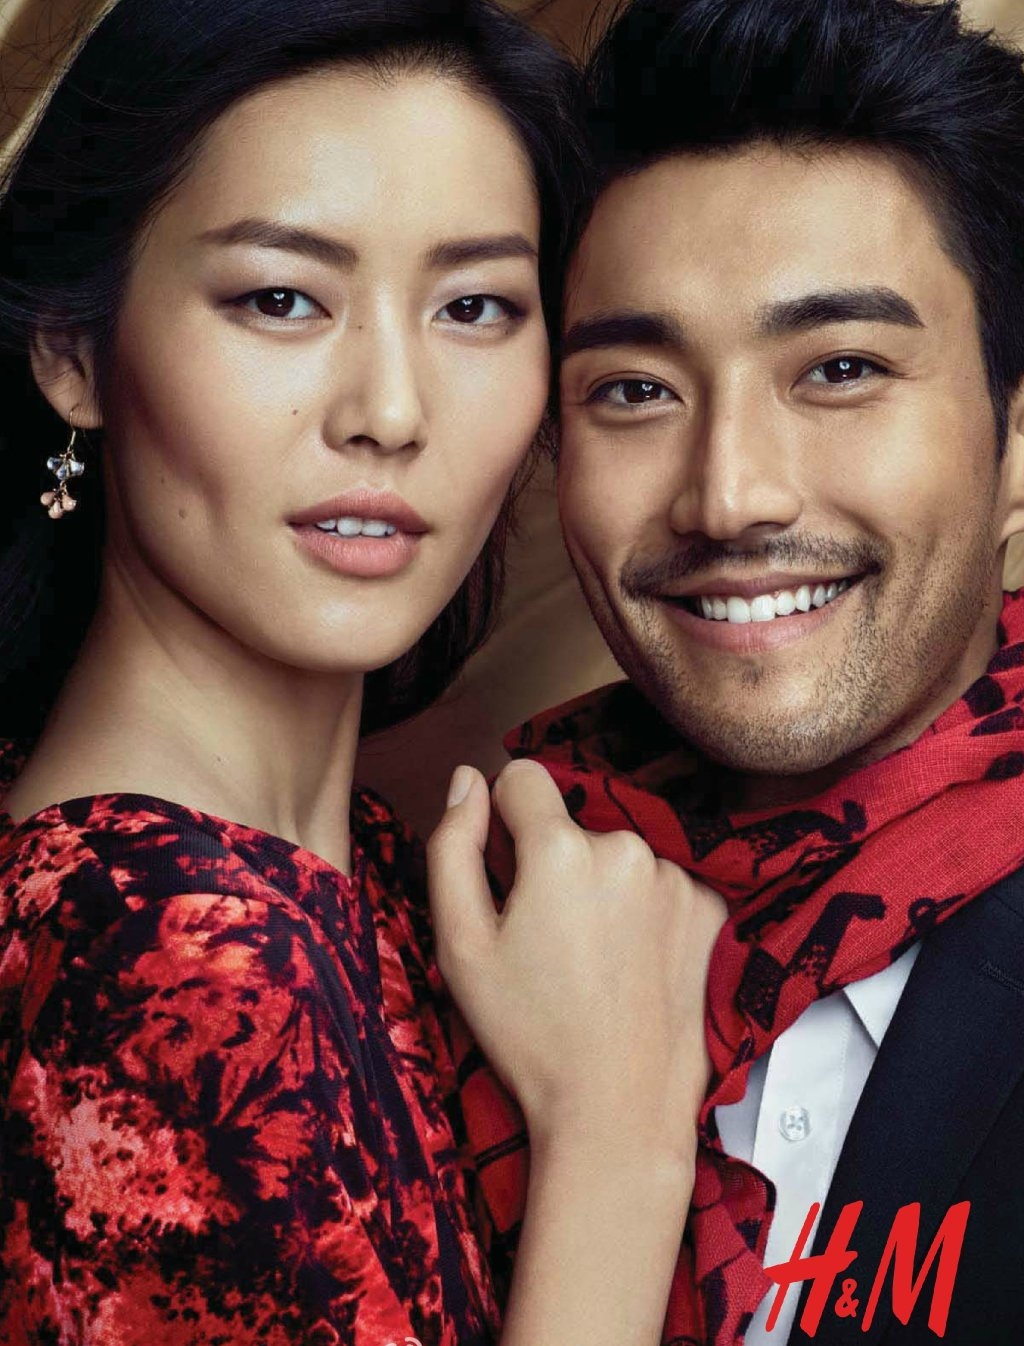 H&M   Project Name:  Chinese New Year Campaign   Casting:  Liu Wen, Si Won Kim   Creative Director:  Alan Castro   Photographer:  Peter Gehrke   Asst. Photographer:  Nigel Perry, Marcus Askelof   Korea Asst.Photographer:  Tae Soo Lee   Stylist:  Lisa Lindquister   Asst.Stylist:  Henrika Bonn   Korea Asst.Stylist:  Jong Sim Kim   Seamstress:  O-Jihyun, Kim Hee Jeong   Set Dresser:  Yoo-ri Moon (Yoolja's Spring)   BTS:  Hwang Sang Jun   Project Manager:  Anna Wallen   Executive Producer : Kimmy MK Kim   Production Coordinator:  Esther Kim   Location:  Seoul, Korea   Production Service:  KNT Production